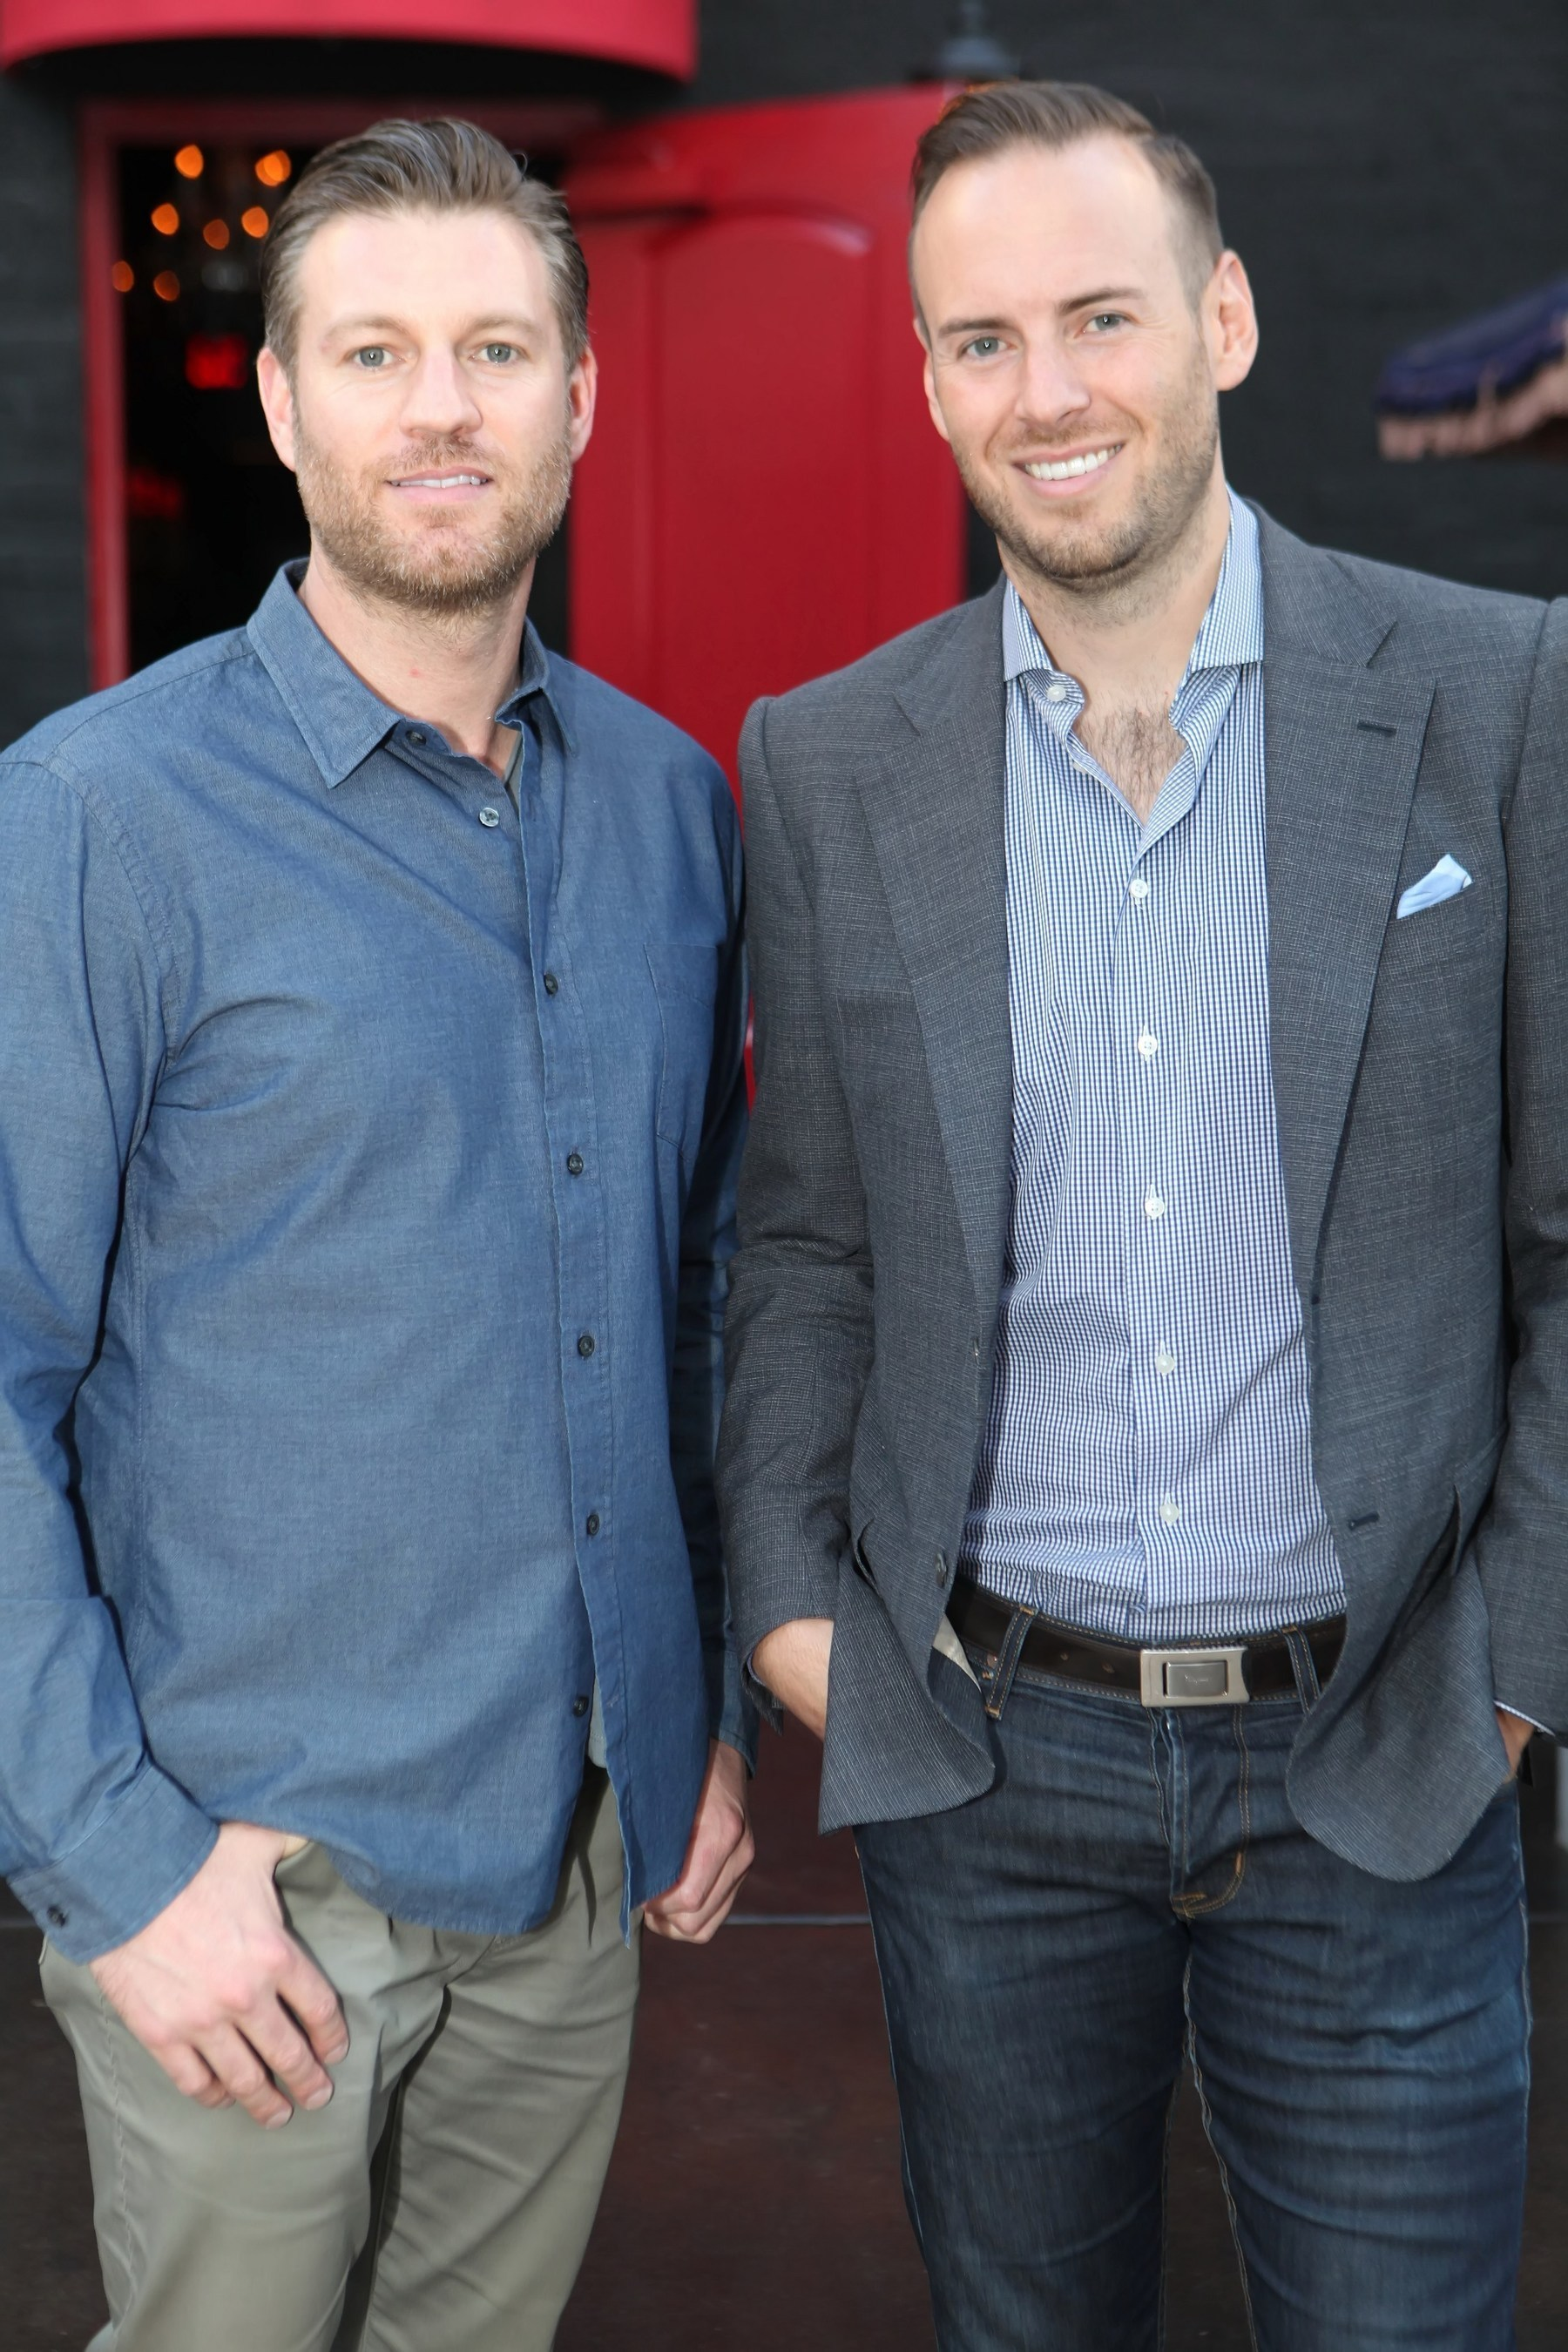 WENDOH Media owners, Ryan Doherty and Justin Weniger